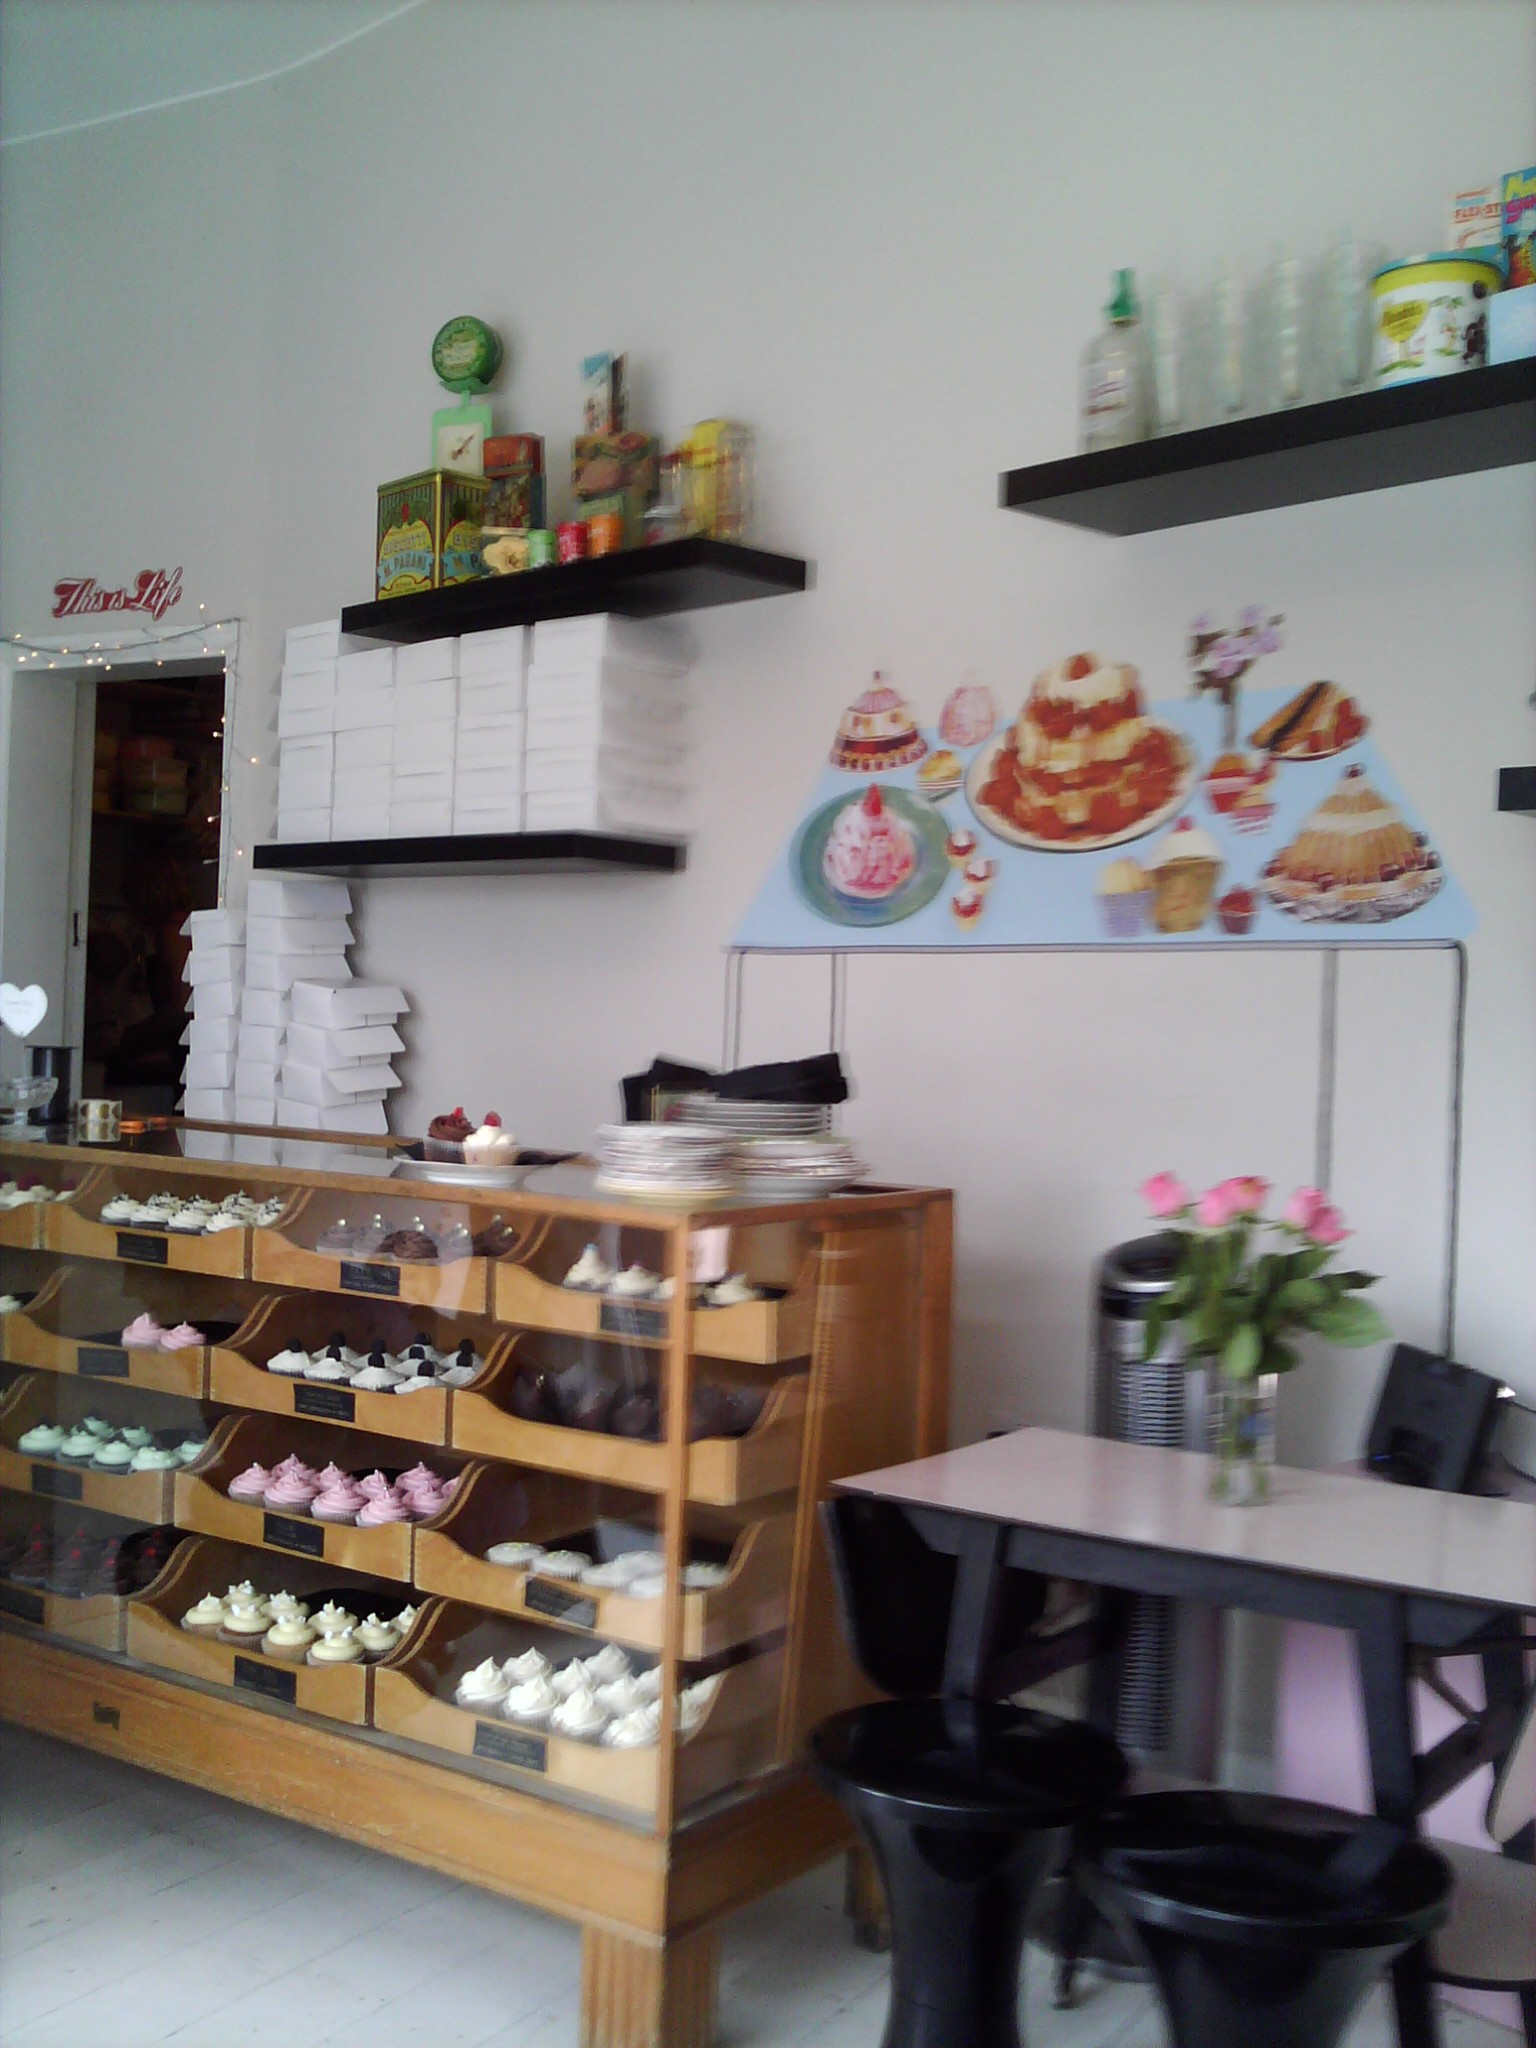 The wide range of cupcakes on offer at Sweet Tooth Cupcakery